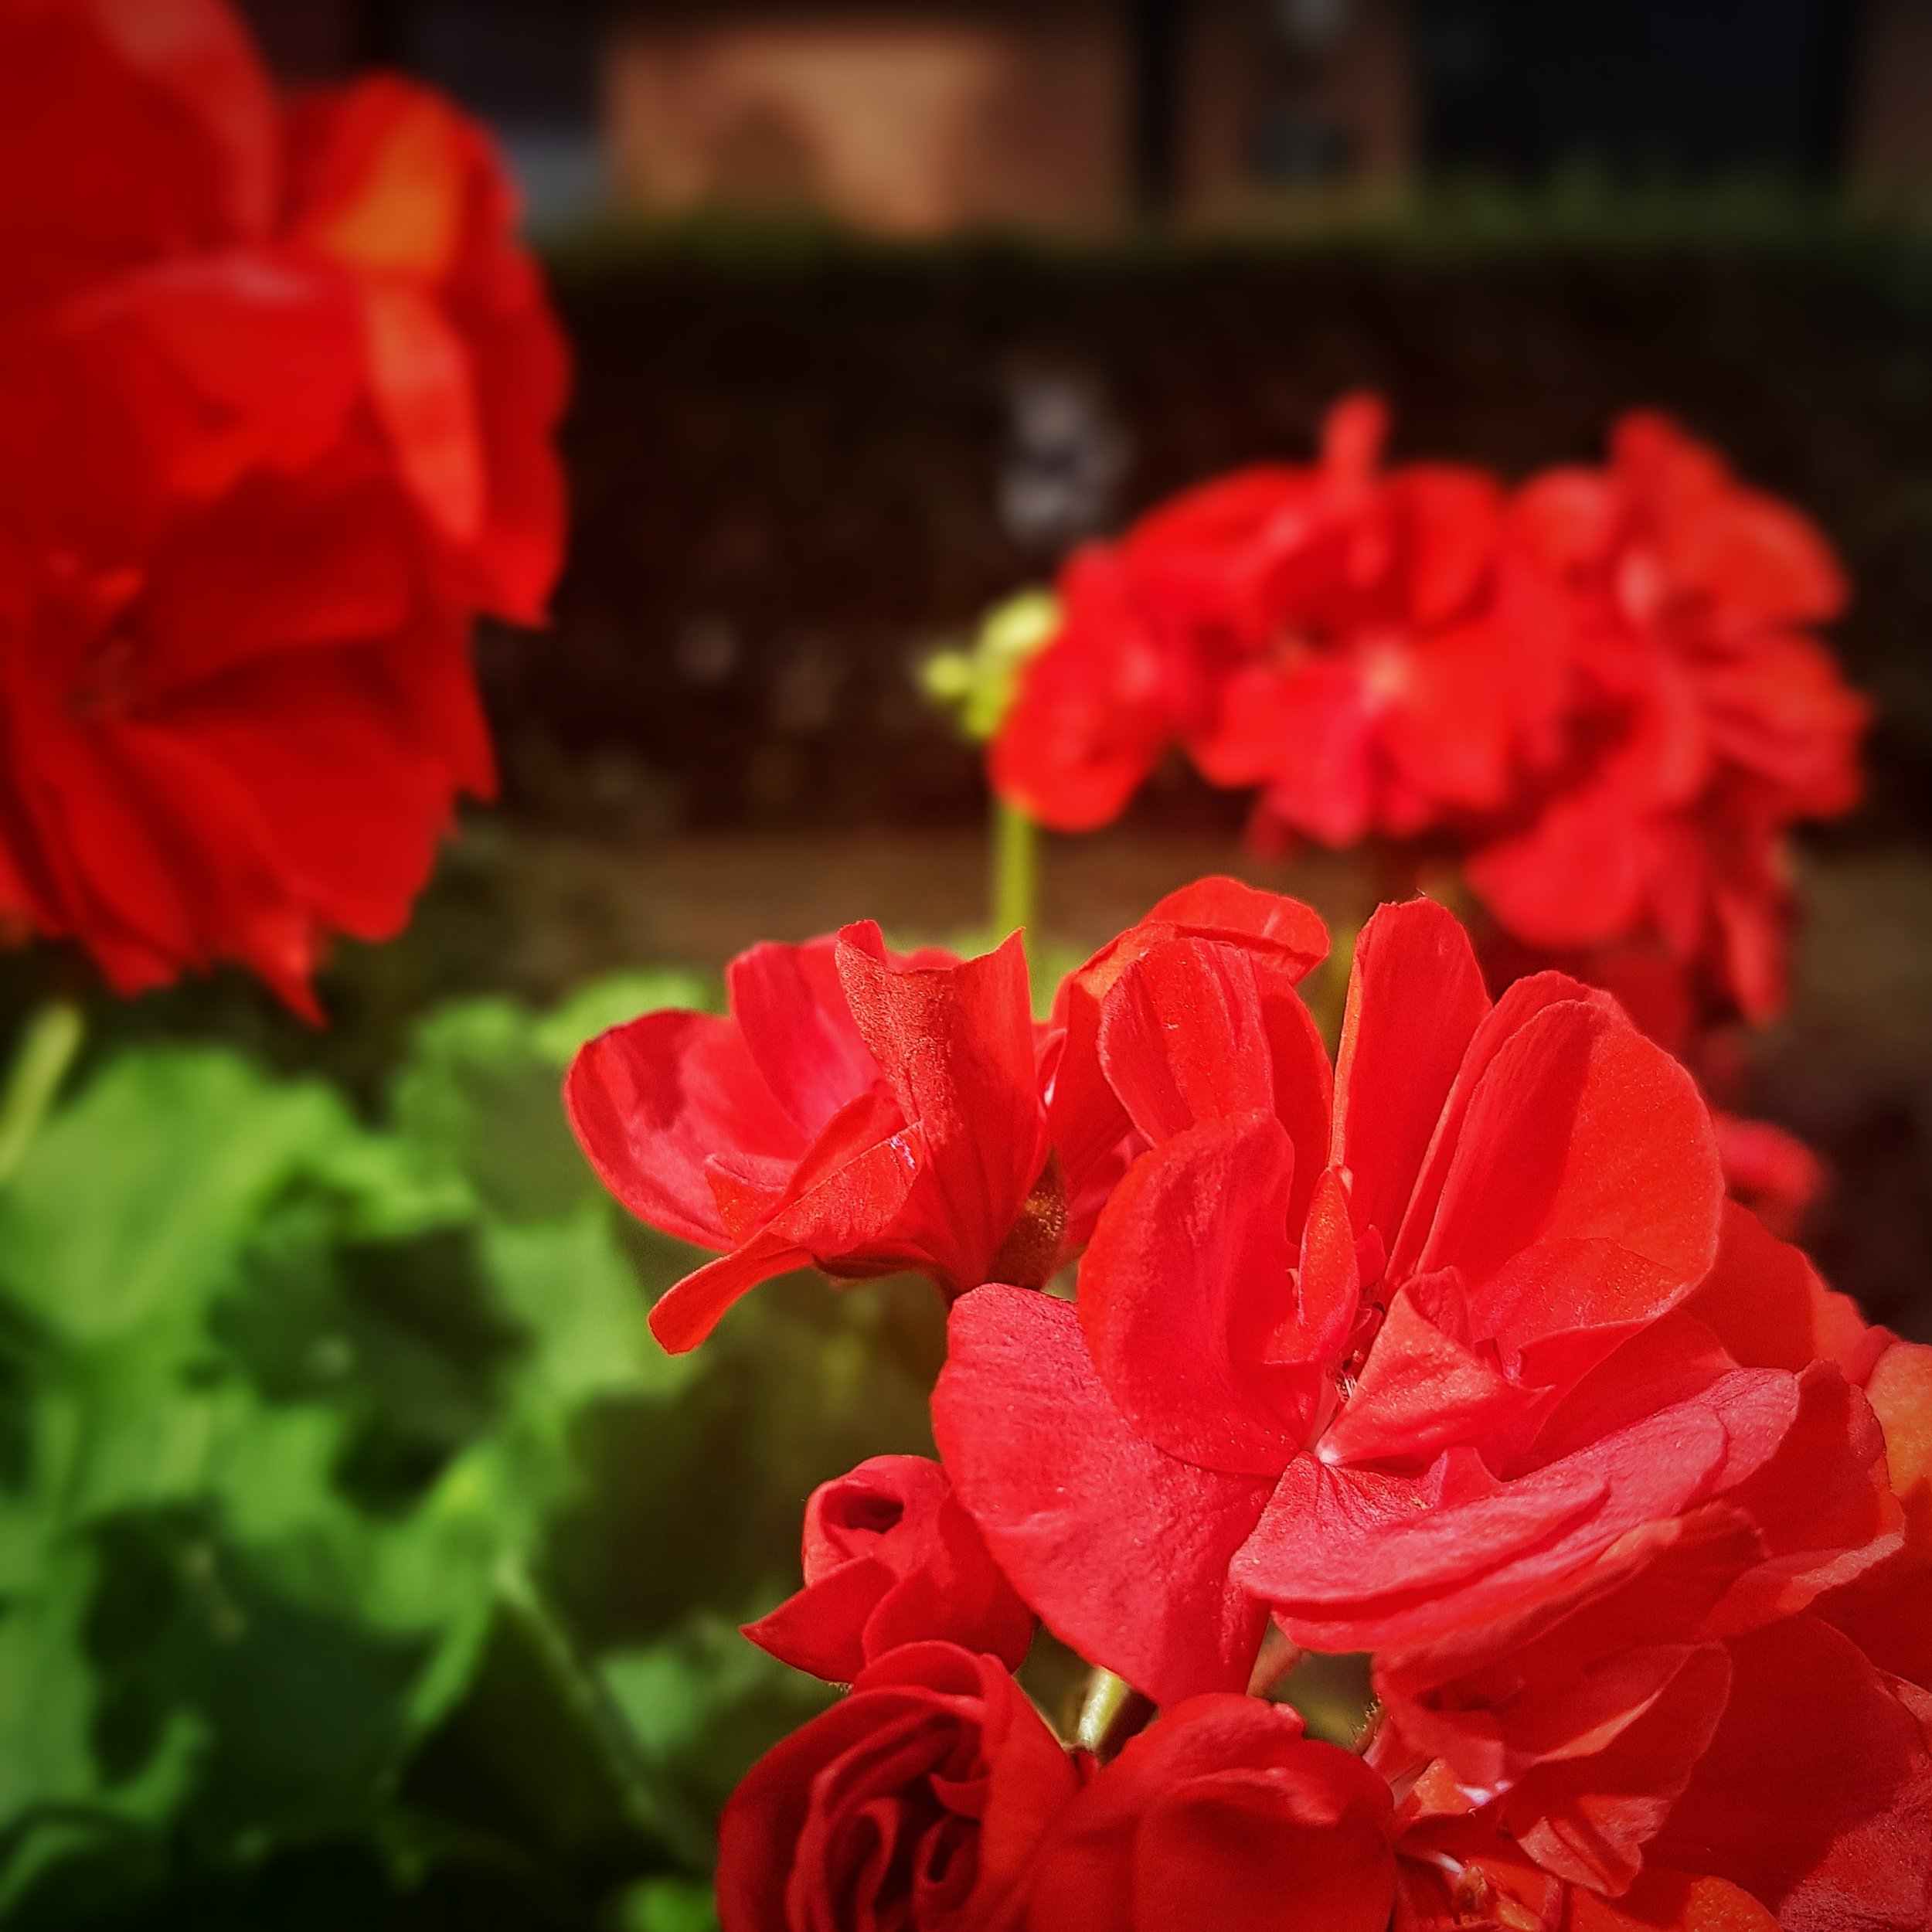 Day 225 - August 13: Red & Green